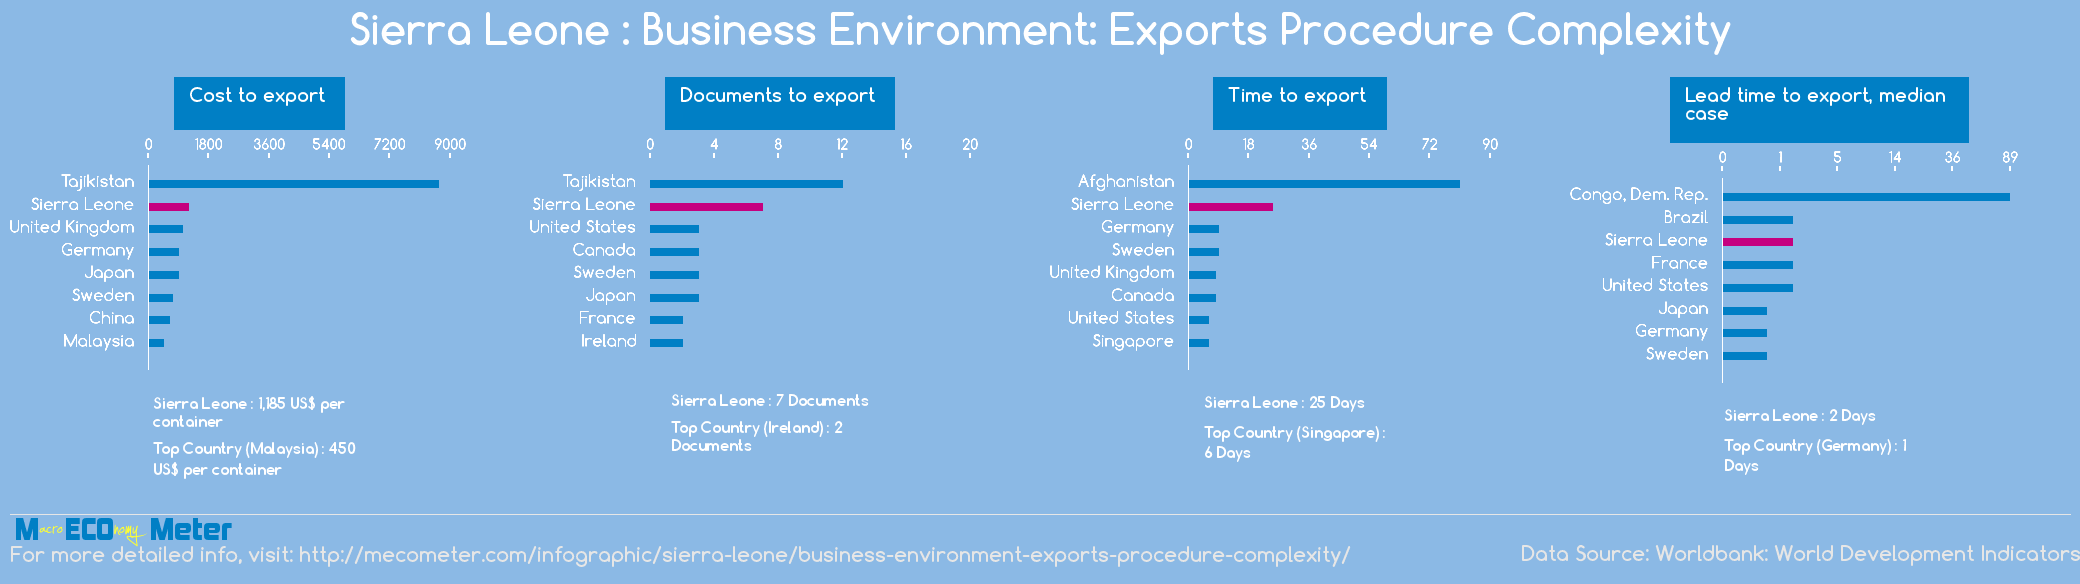 Sierra Leone : Business Environment: Exports Procedure Complexity